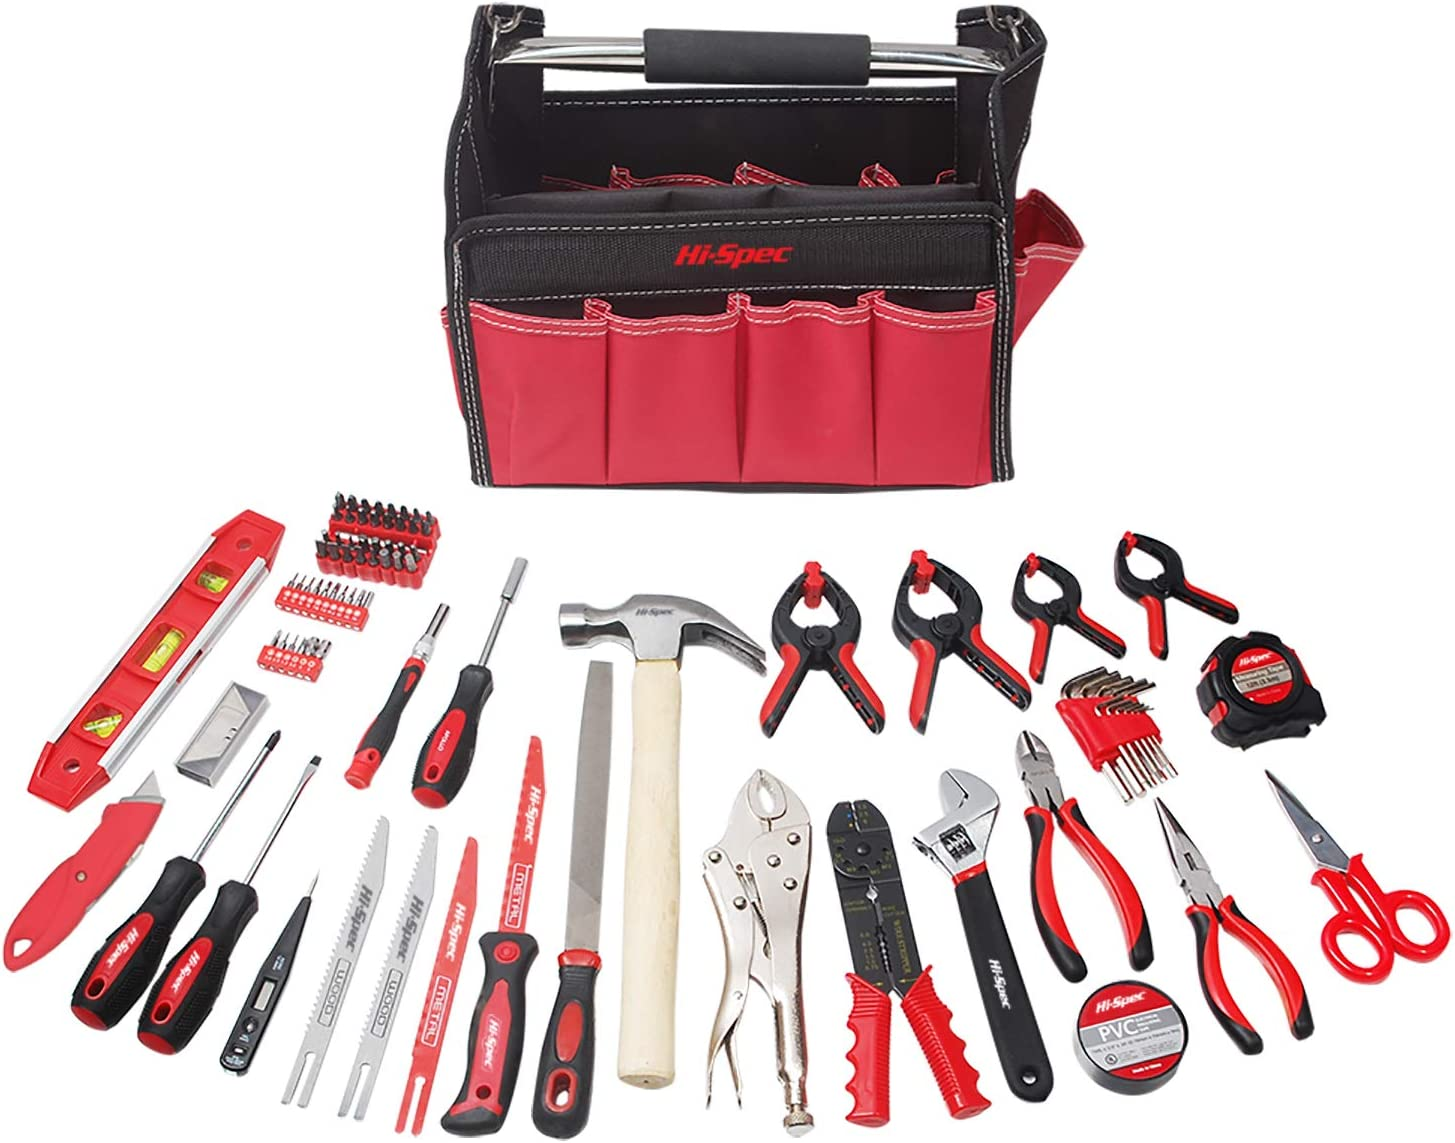 Hi-Spec 101pc Home, Office, Garage and Workshop Tool Set of Most Popular Tools in Tool Tote Bag for Everyday DIY, Decorating, Hobby, Plumbing, Electronics Repair, Arts and Crafts